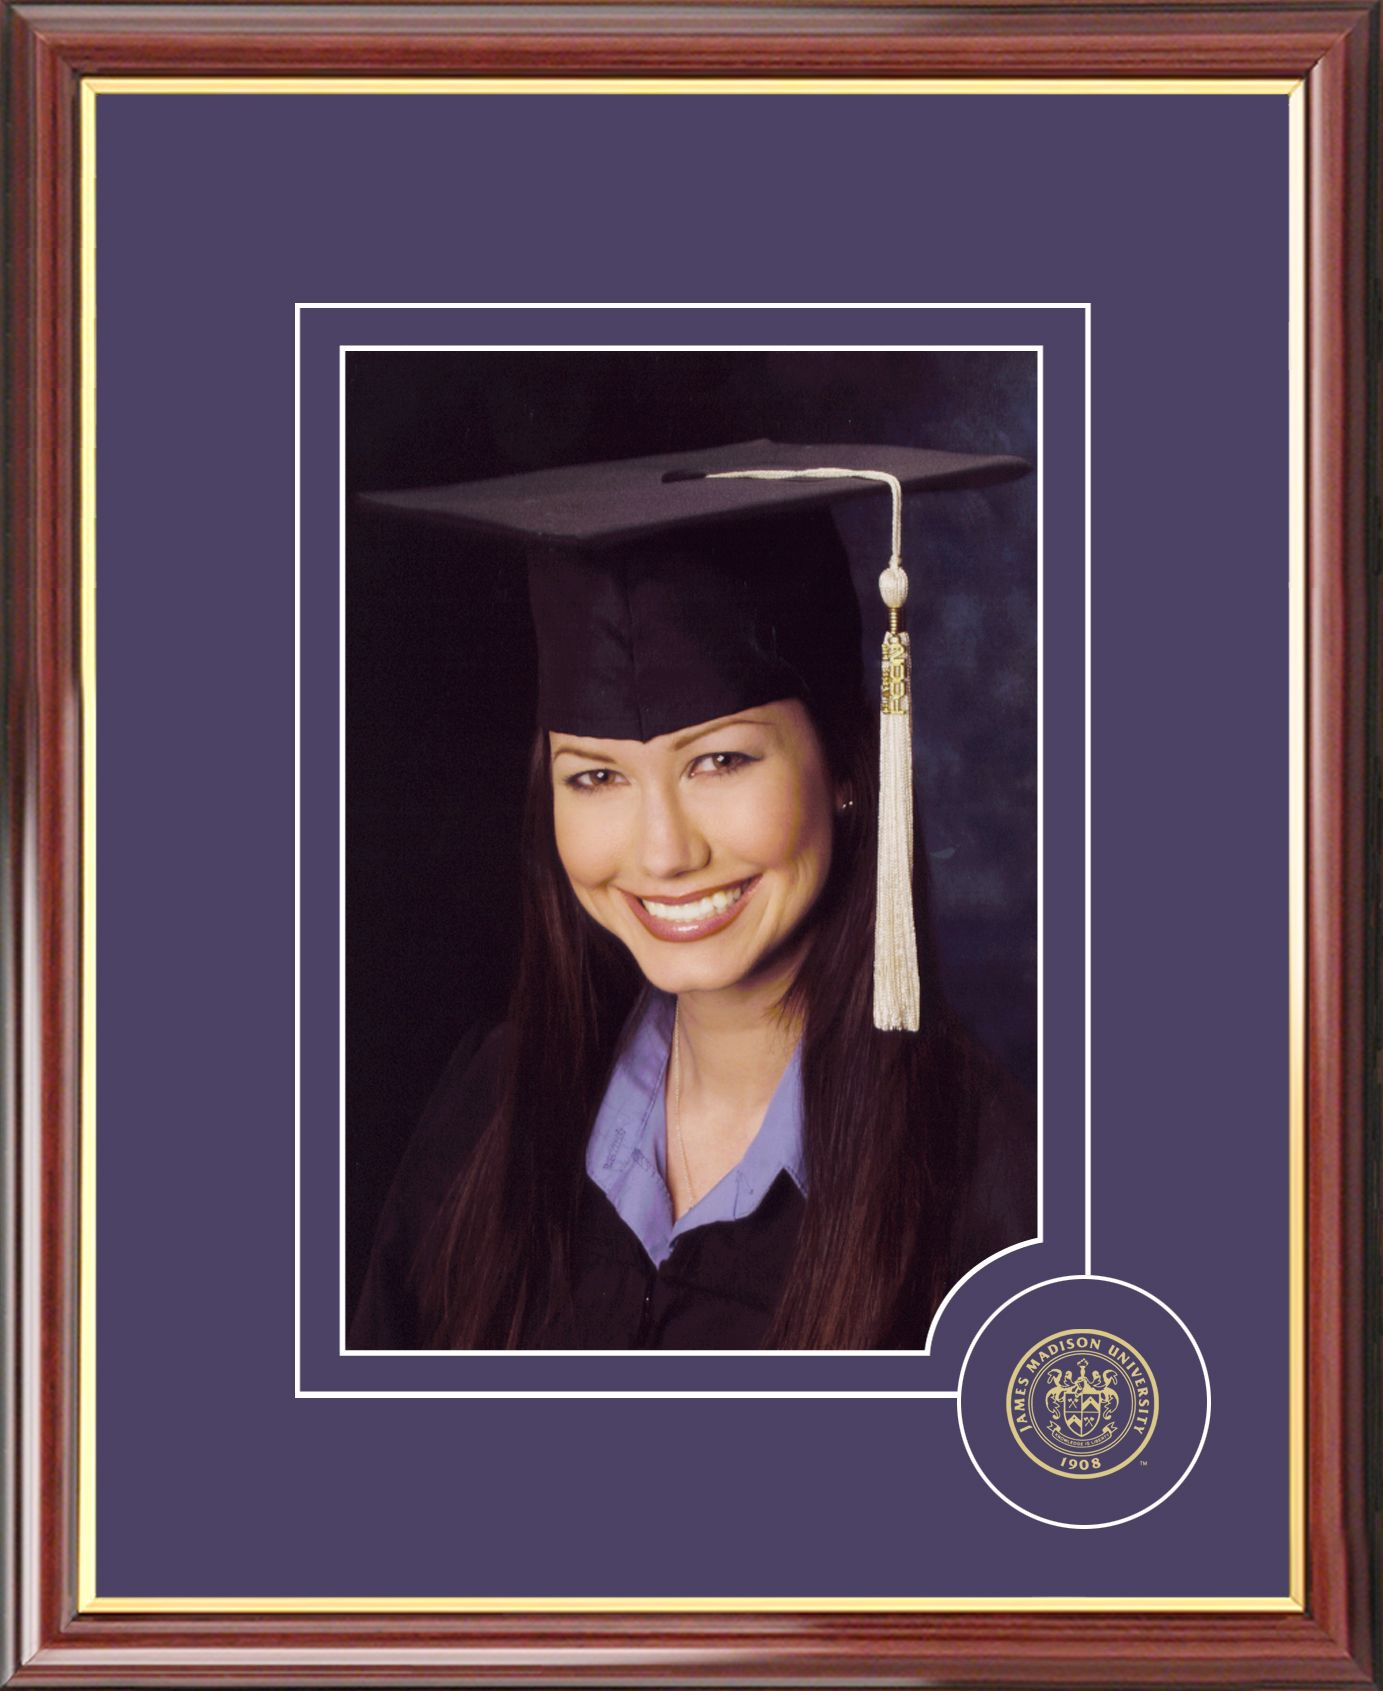 James Madison University 5X7 Graduate Portrait Frame